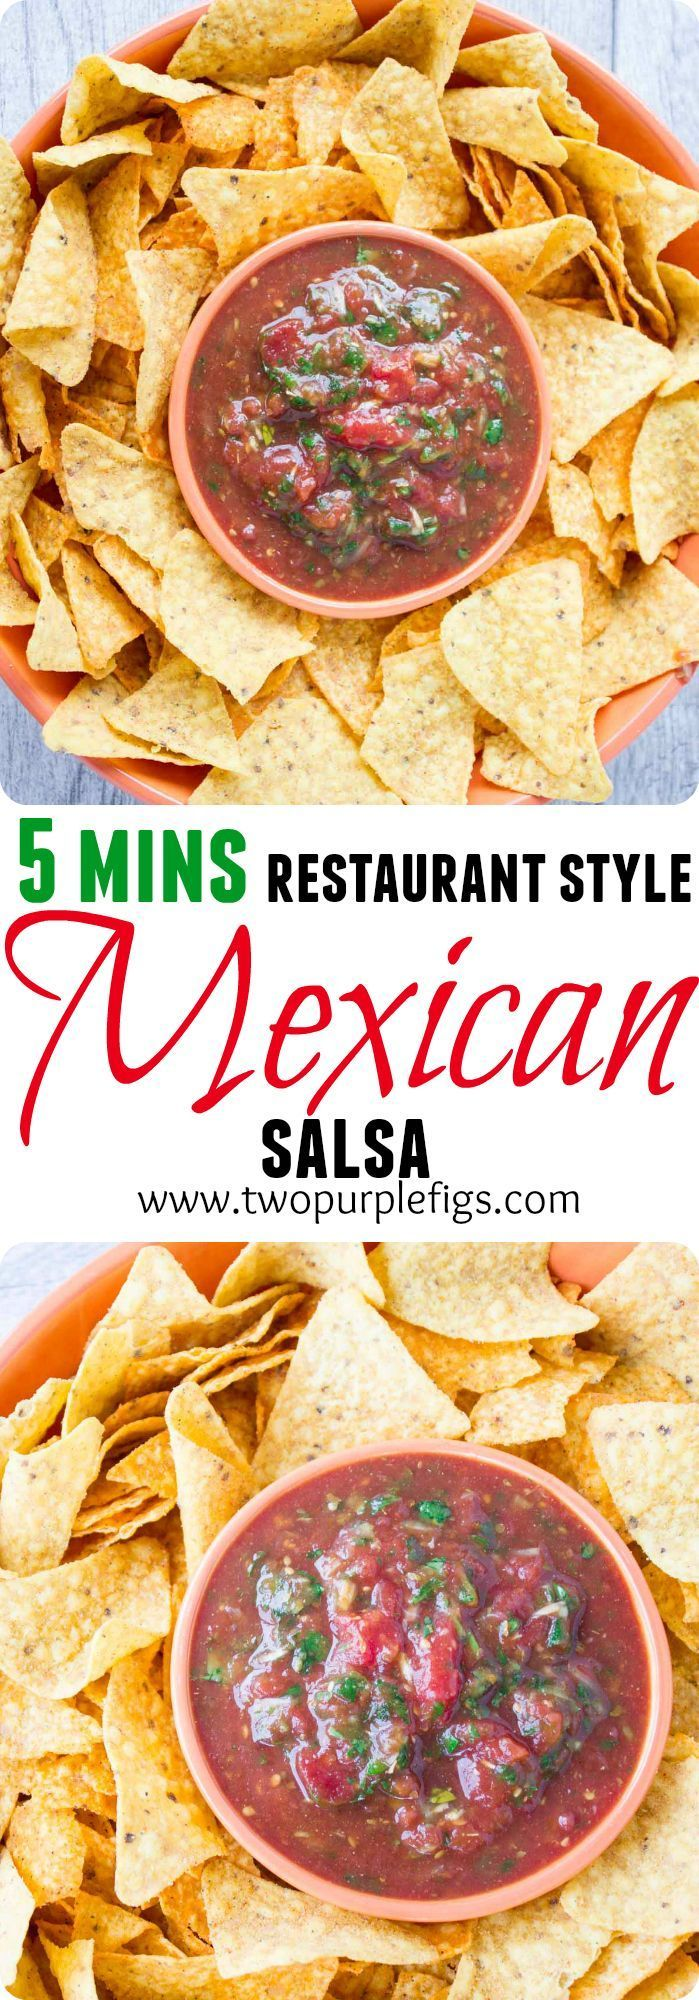 Restaurant style mexican salsa recipe mexican salsa salsa and restaurant style mexican salsa cookbook recipestop forumfinder Choice Image